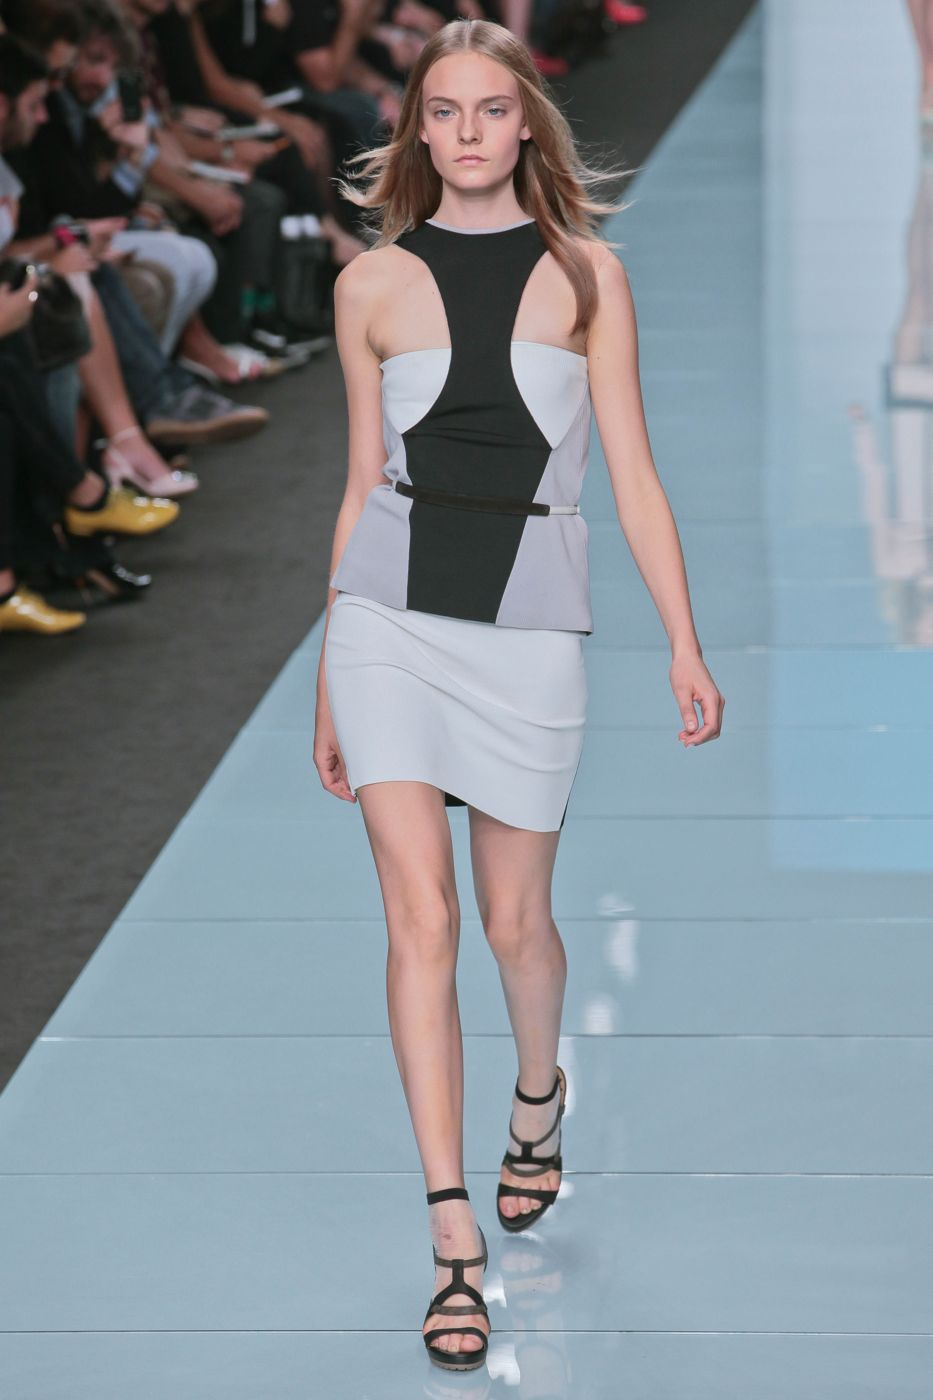 Anteprima Spring Summer 2012 Women Fashion Show Catwalk